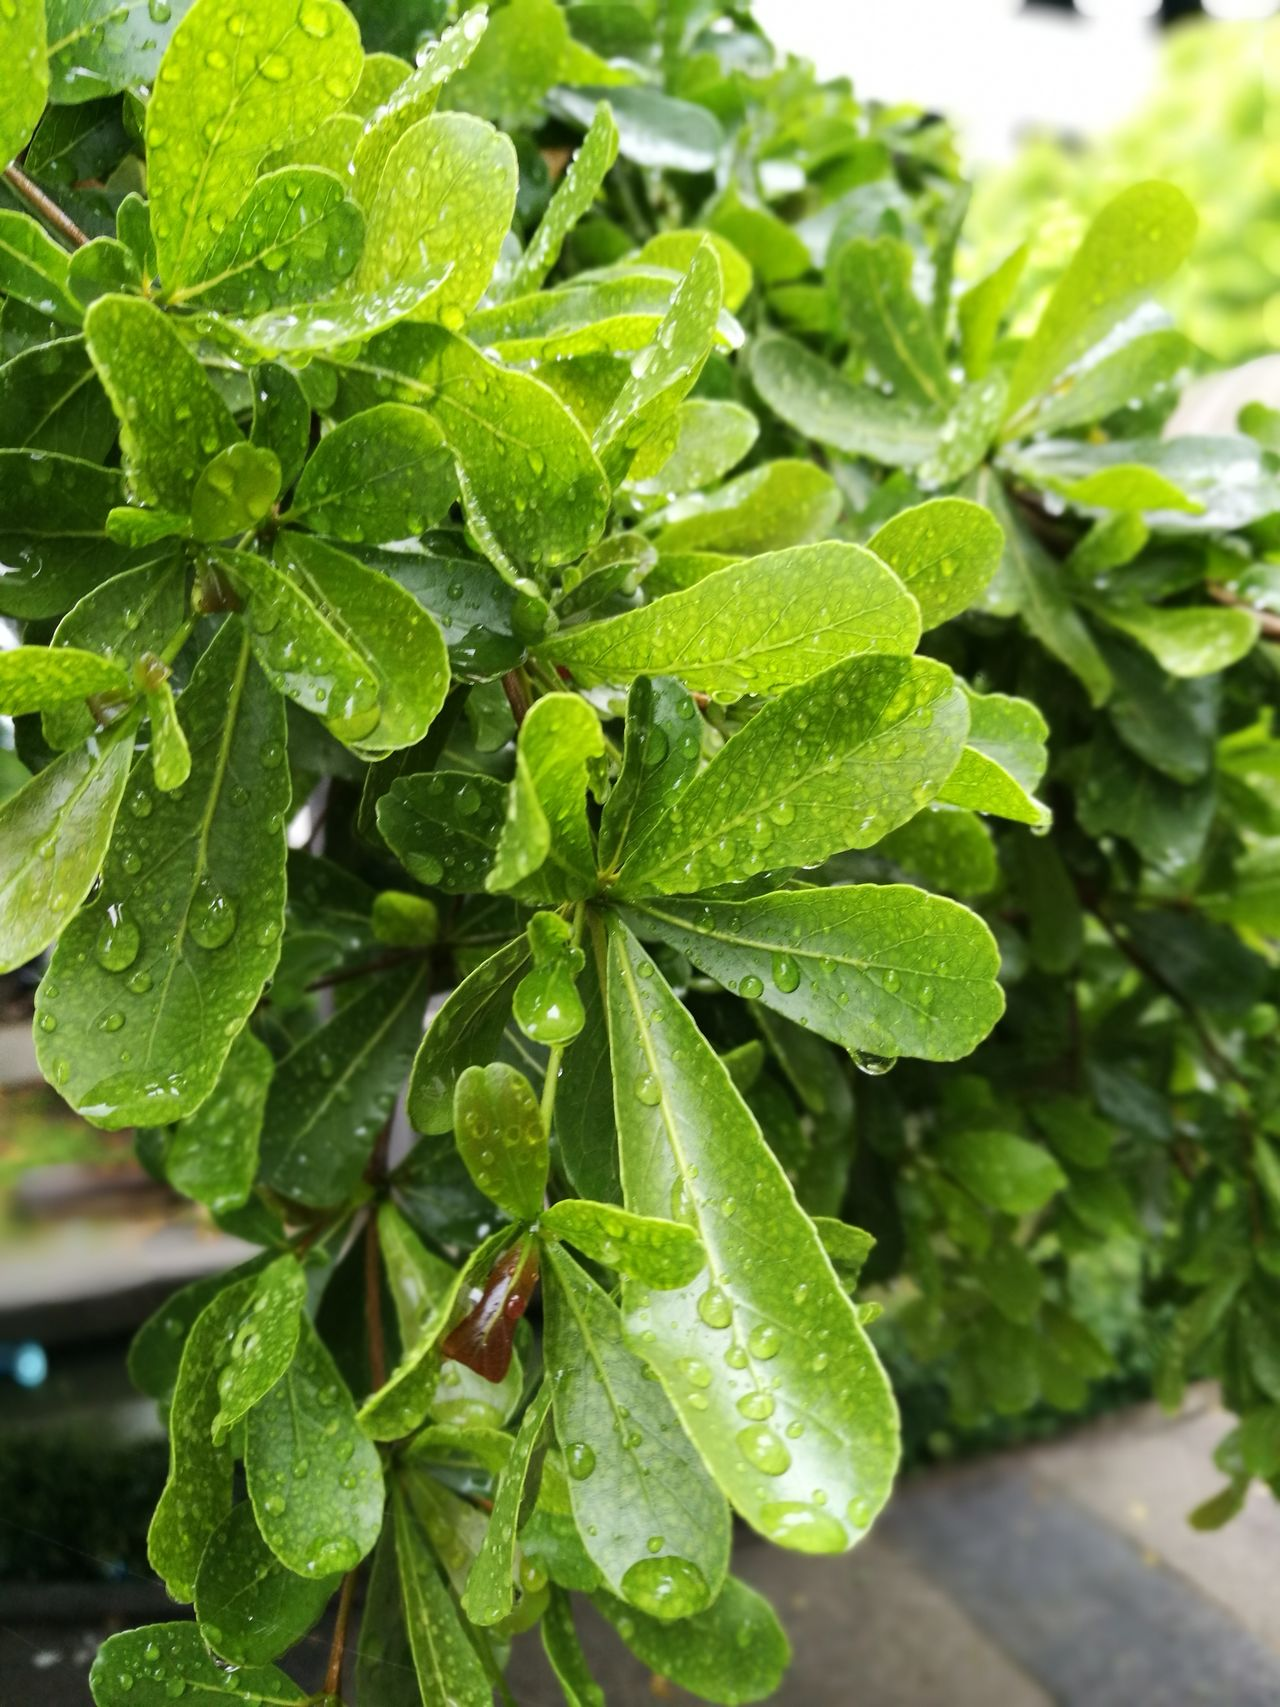 Leaf Green Color Plant Growth Close-up Nature No People Freshness Agriculture Outdoors Day Beauty In Nature Healthy Eating Freshness Plant Growth Nature Beauty In Nature